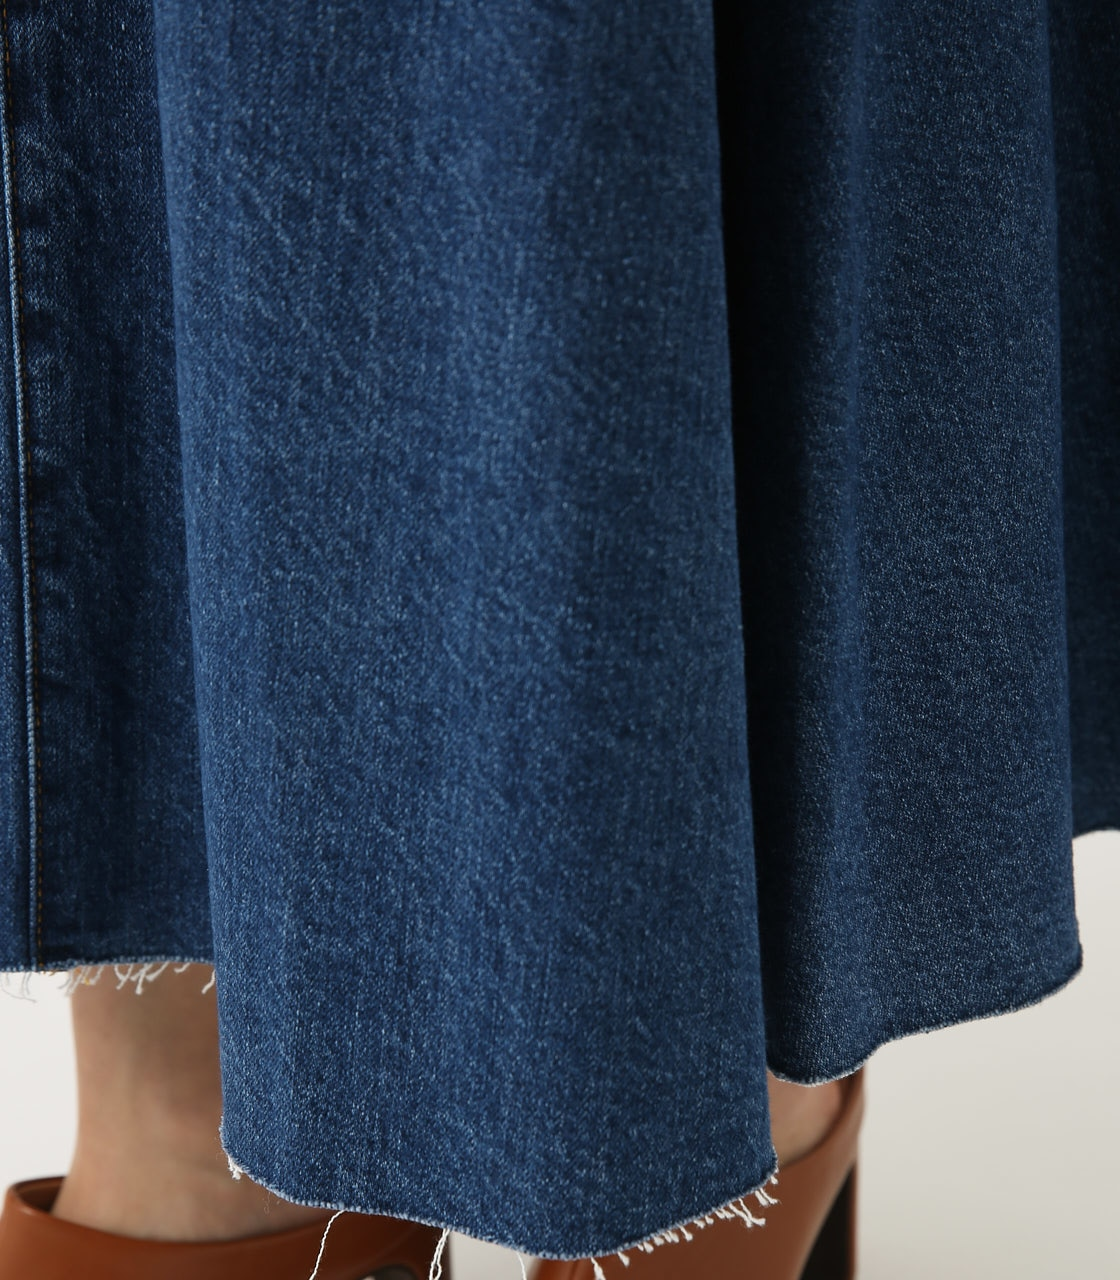 CUT OFF FLARE DENIM LONG SKIRT 詳細画像 BLU 8